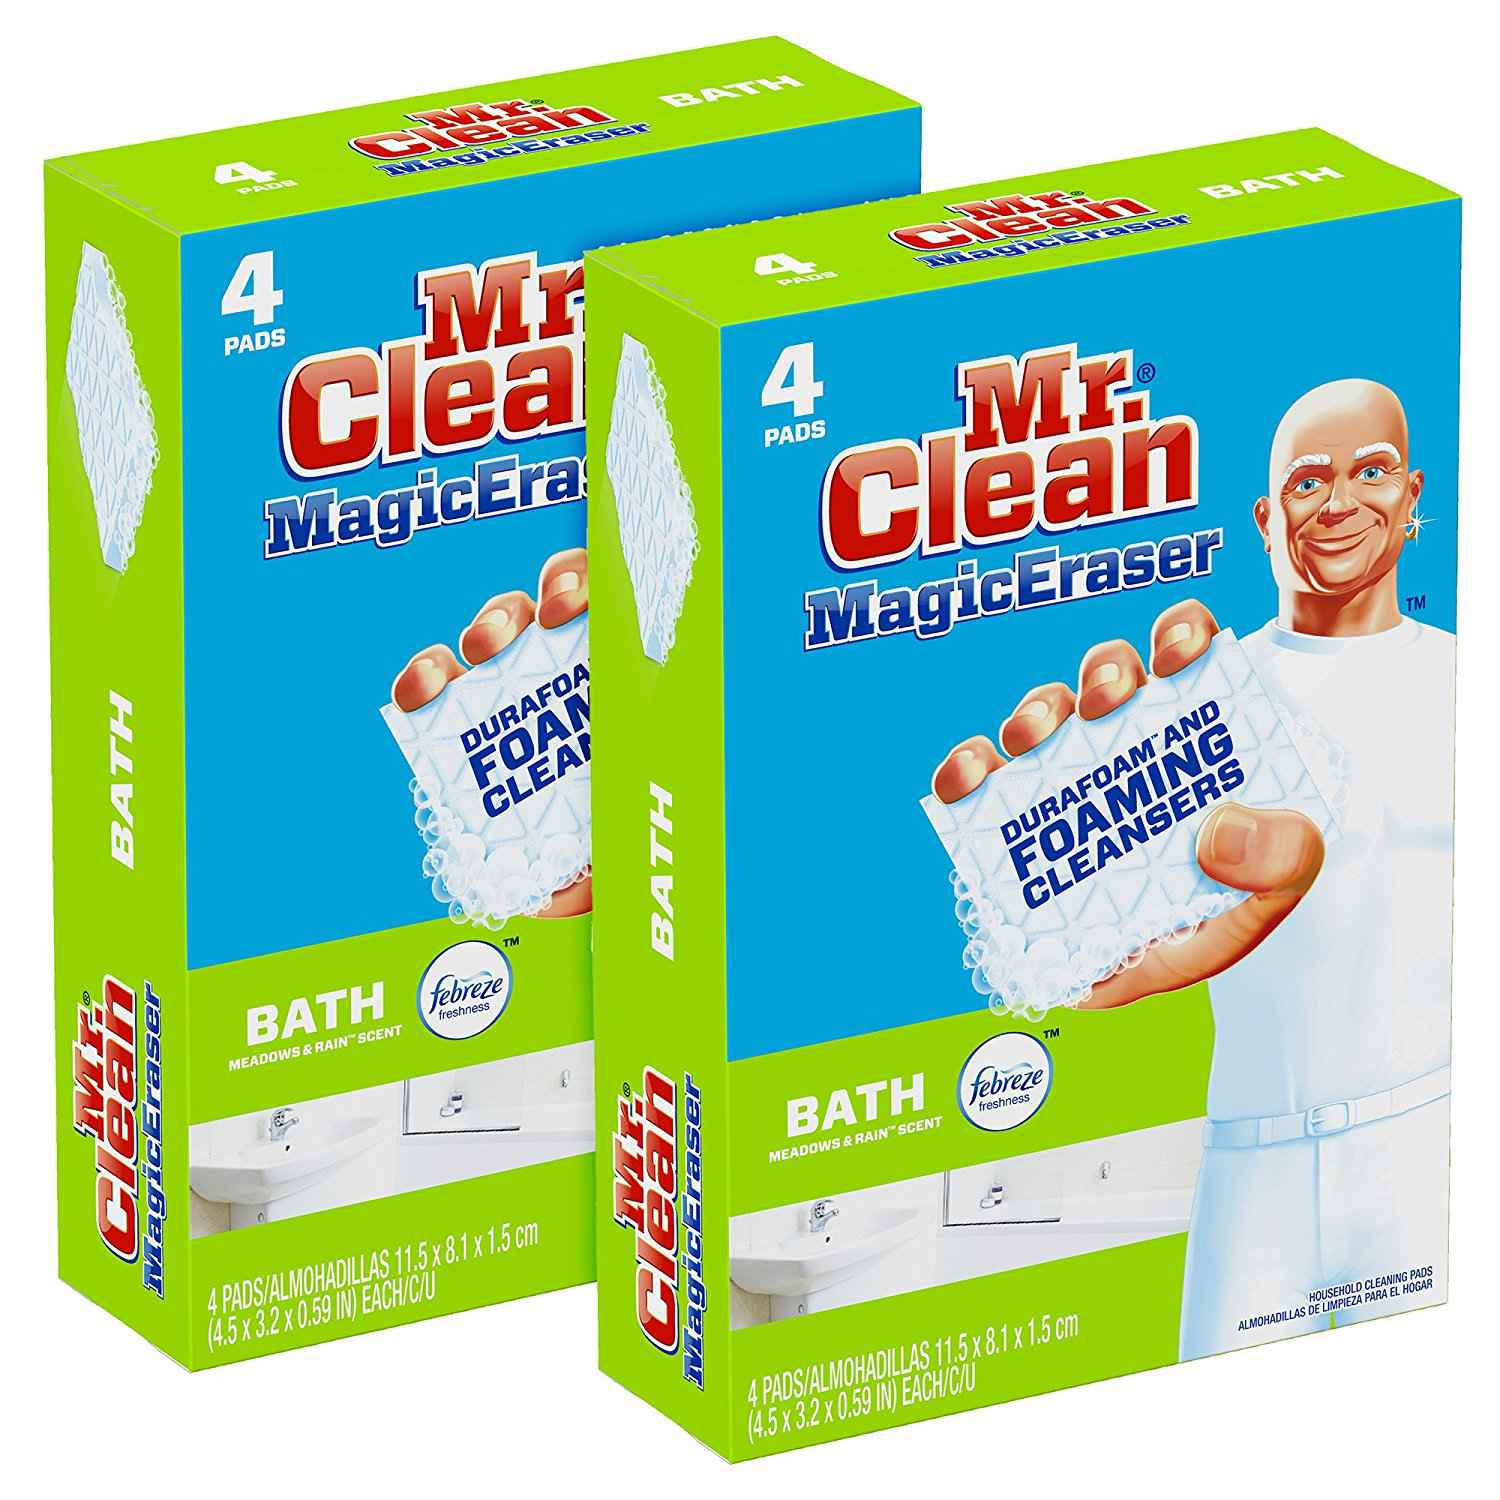 Mr. Clean Magic Eraser Bath, Cleaning Pads Durafoam